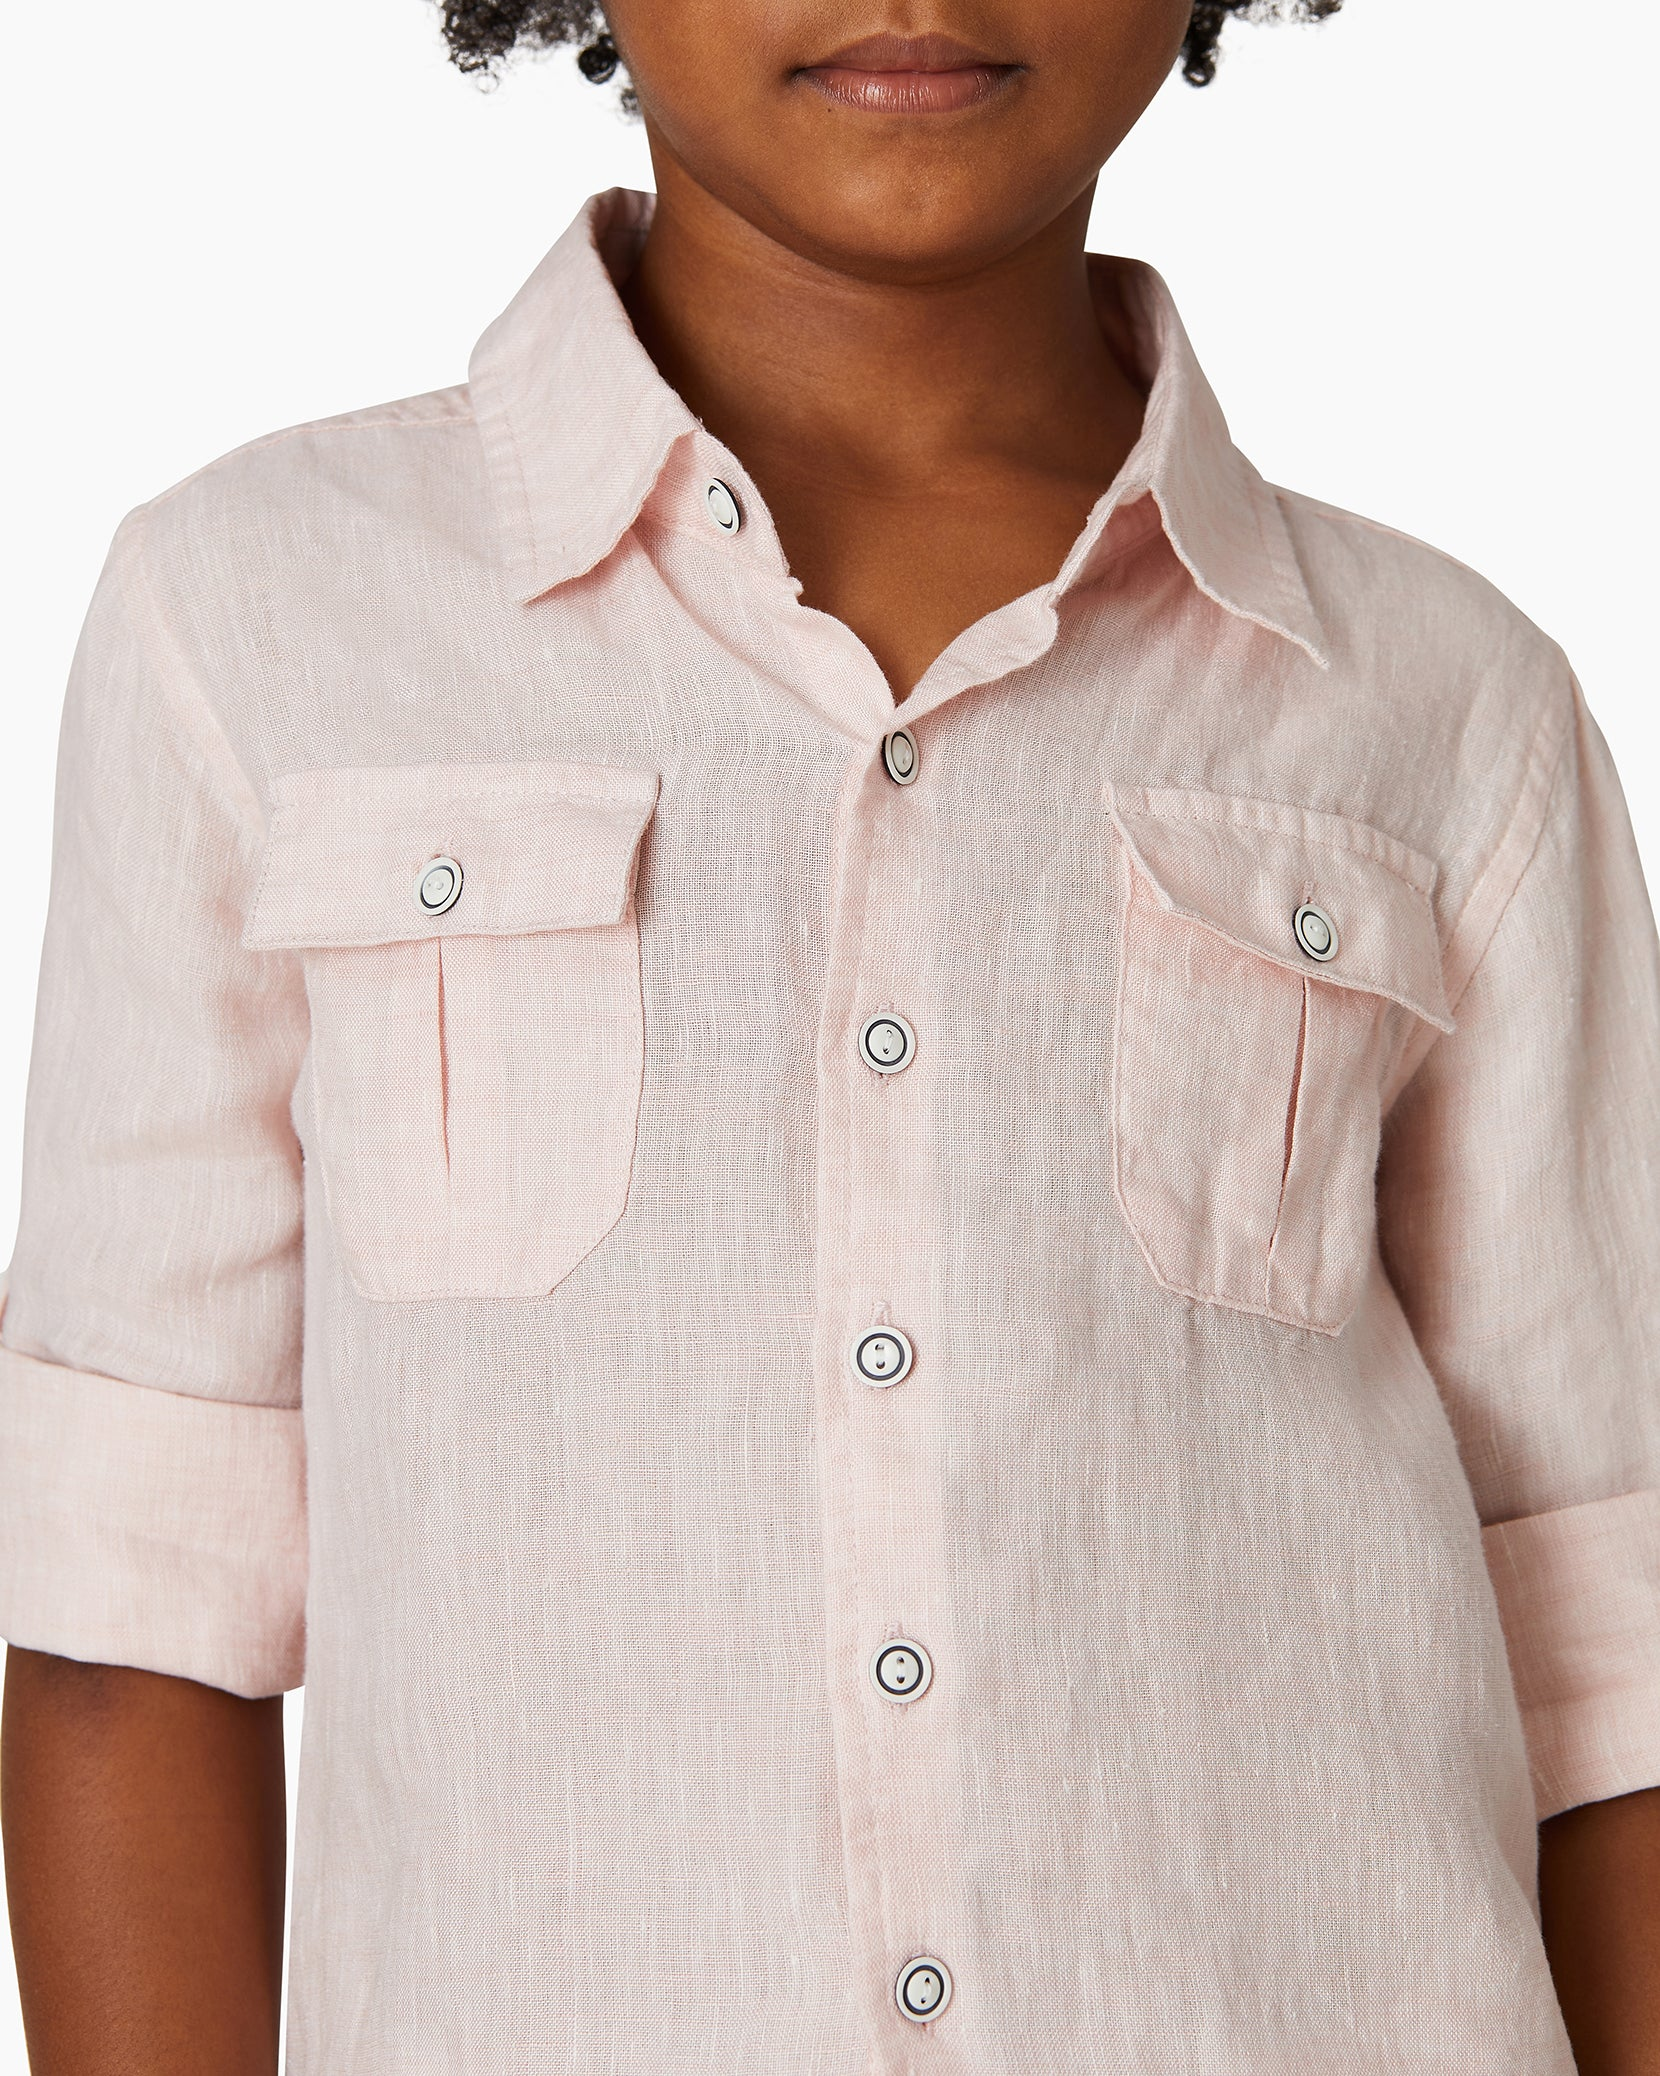 Boys Linen Garret Shirt in Petal - 10 - Onia